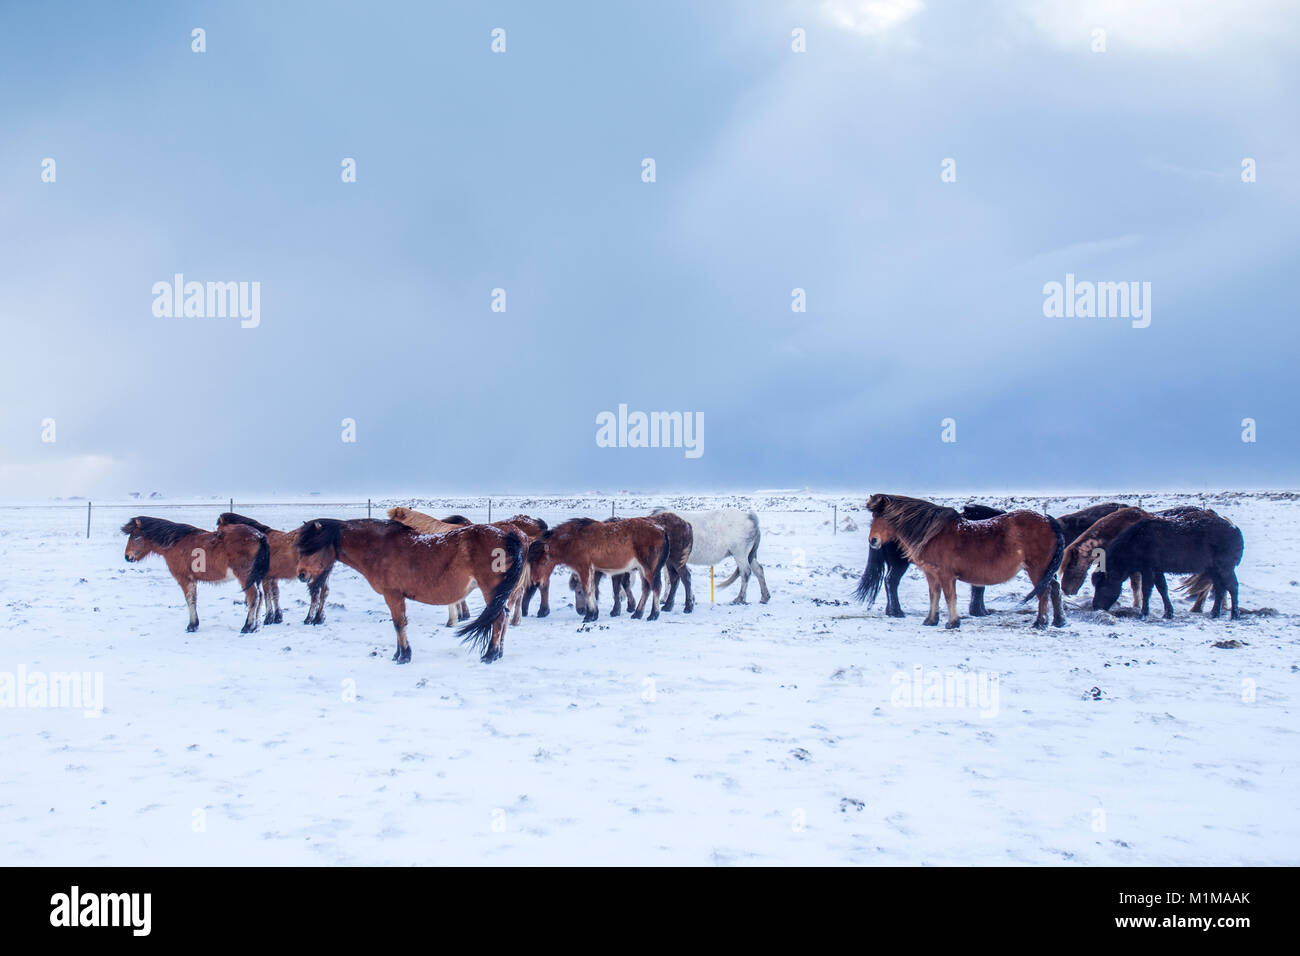 Icelandic horses in winter - Stock Image